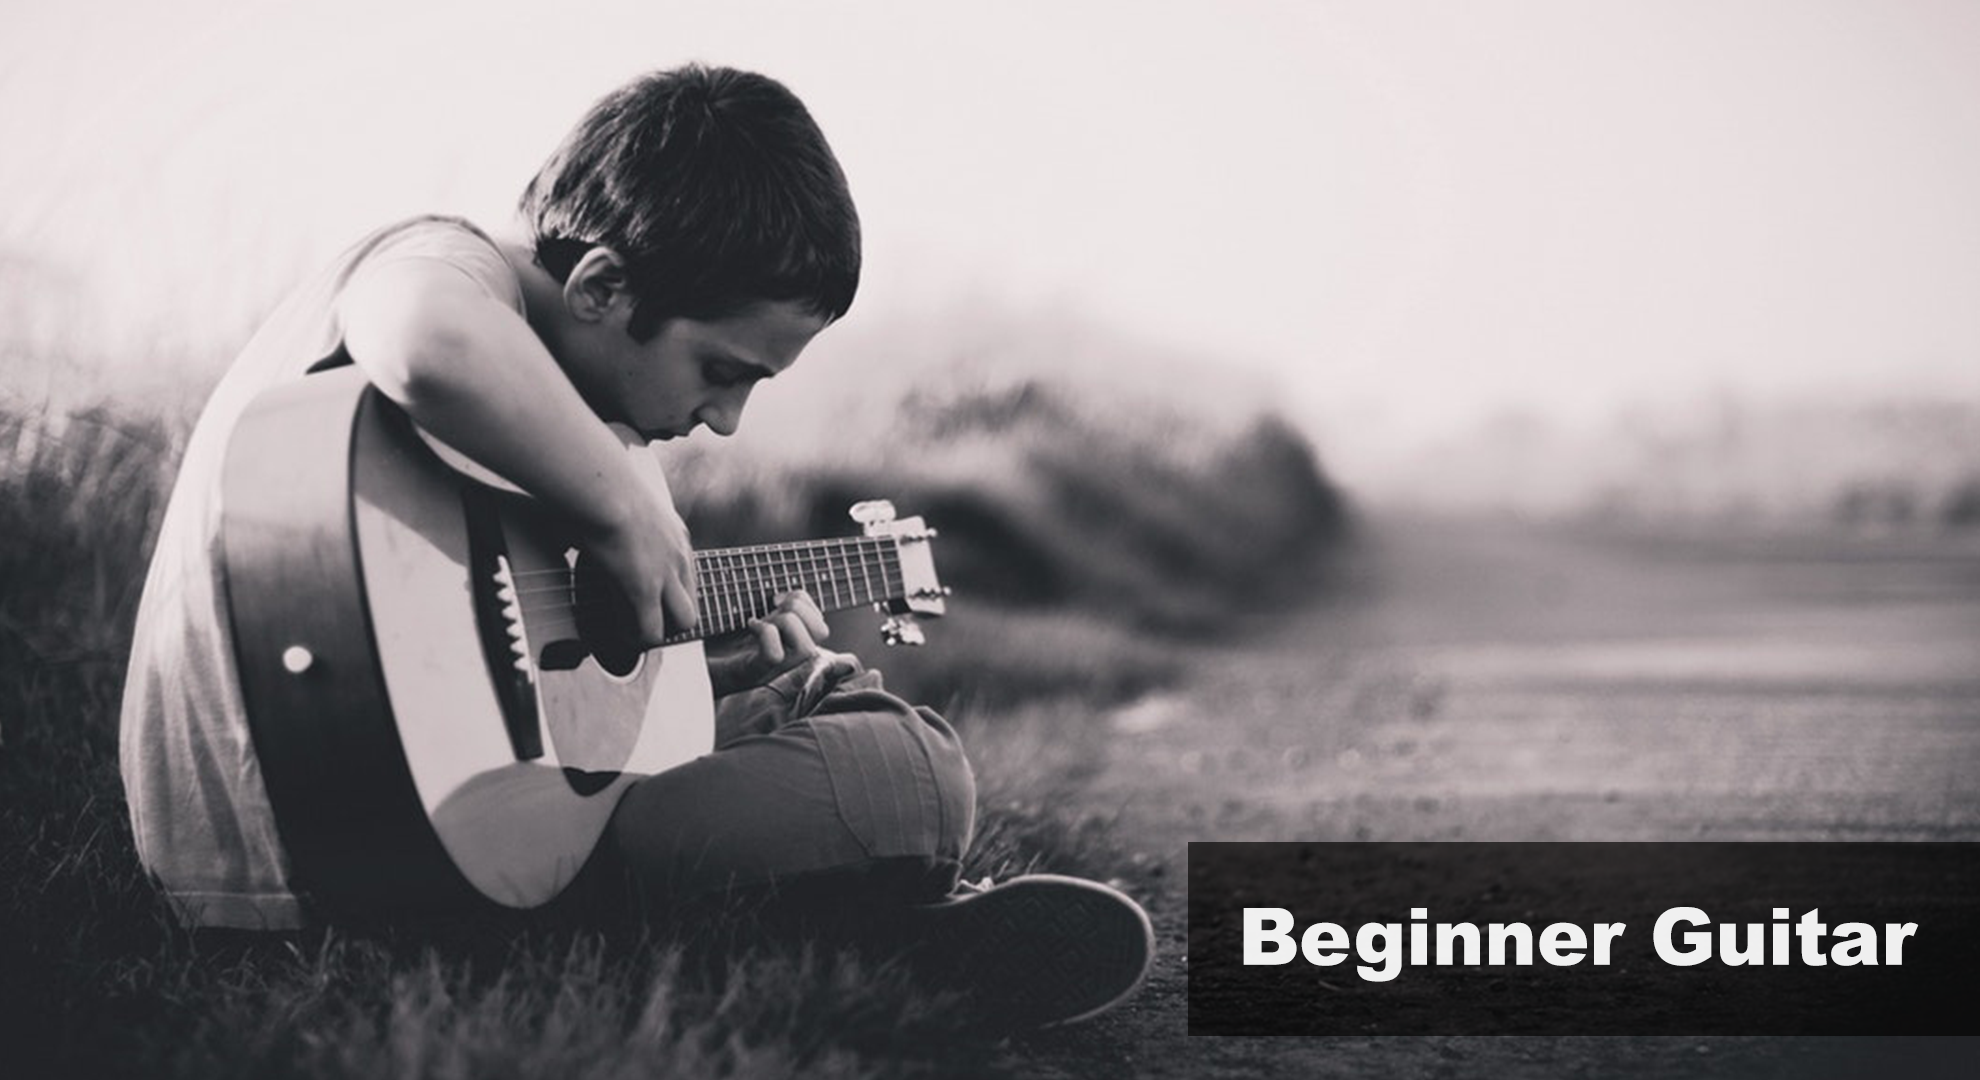 Providing Musical Instruments, Lessons, Repair Services and